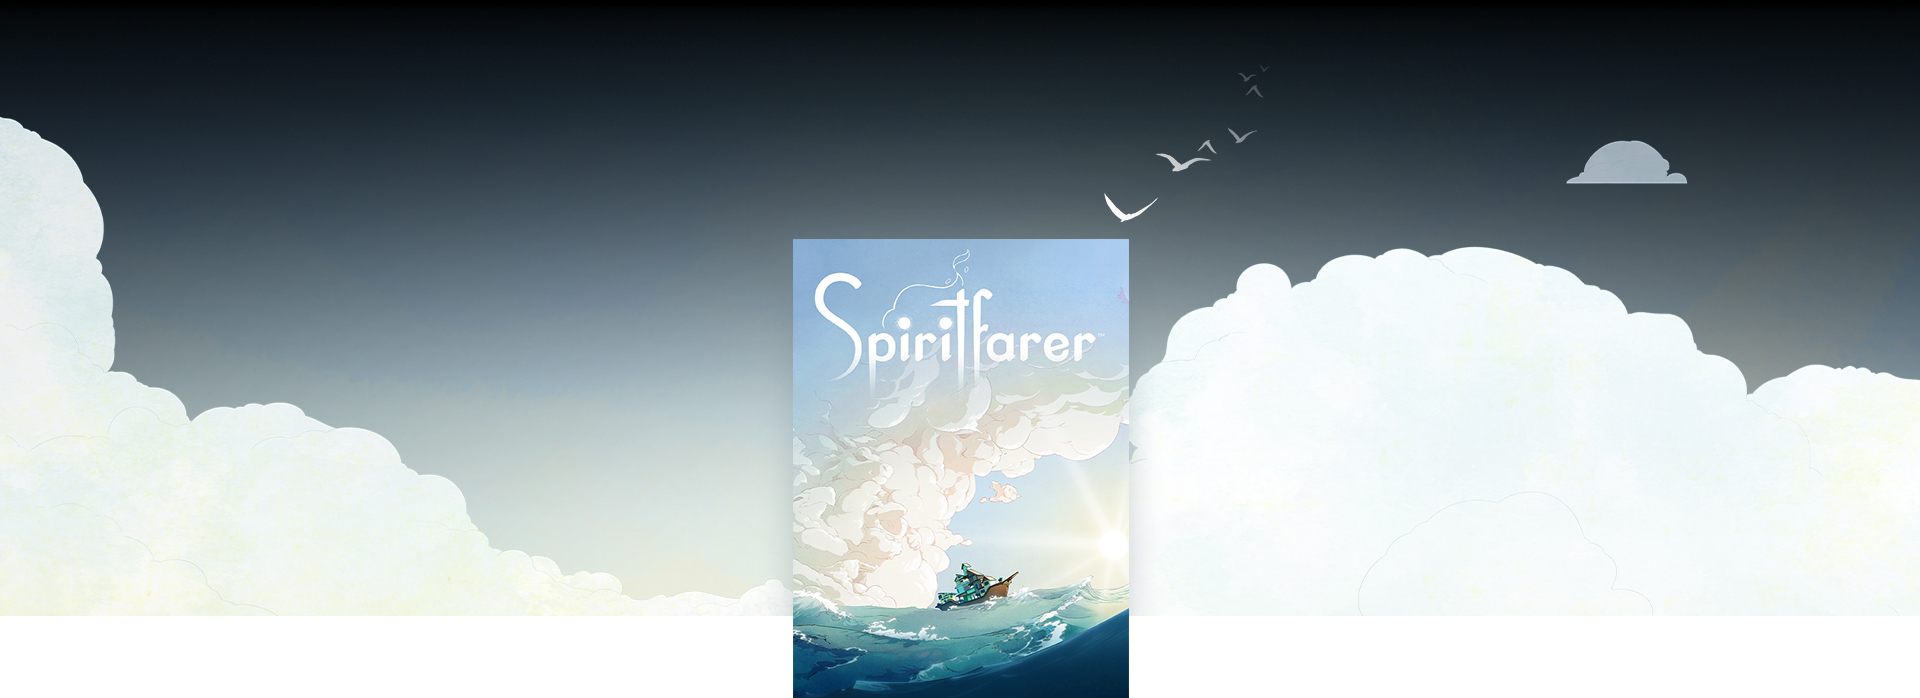 Spiritfarer boxshot, background of clouds and birds flying away